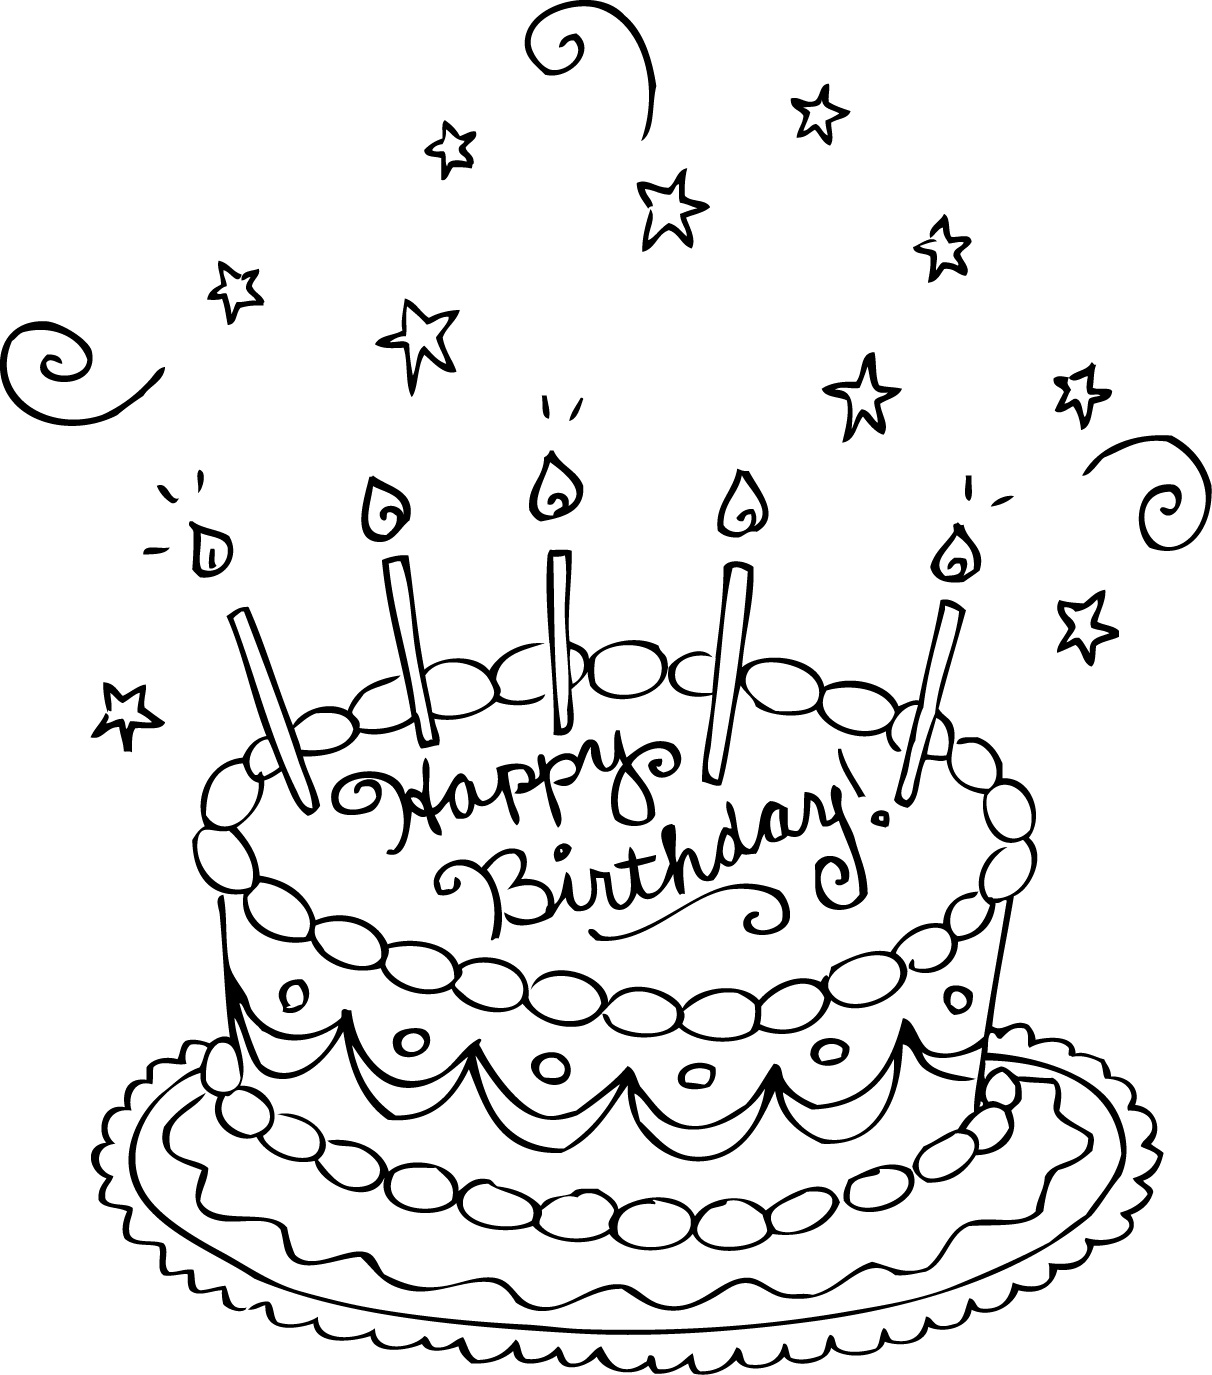 coloring pages cake slice of cake drawing at getdrawings free download pages cake coloring